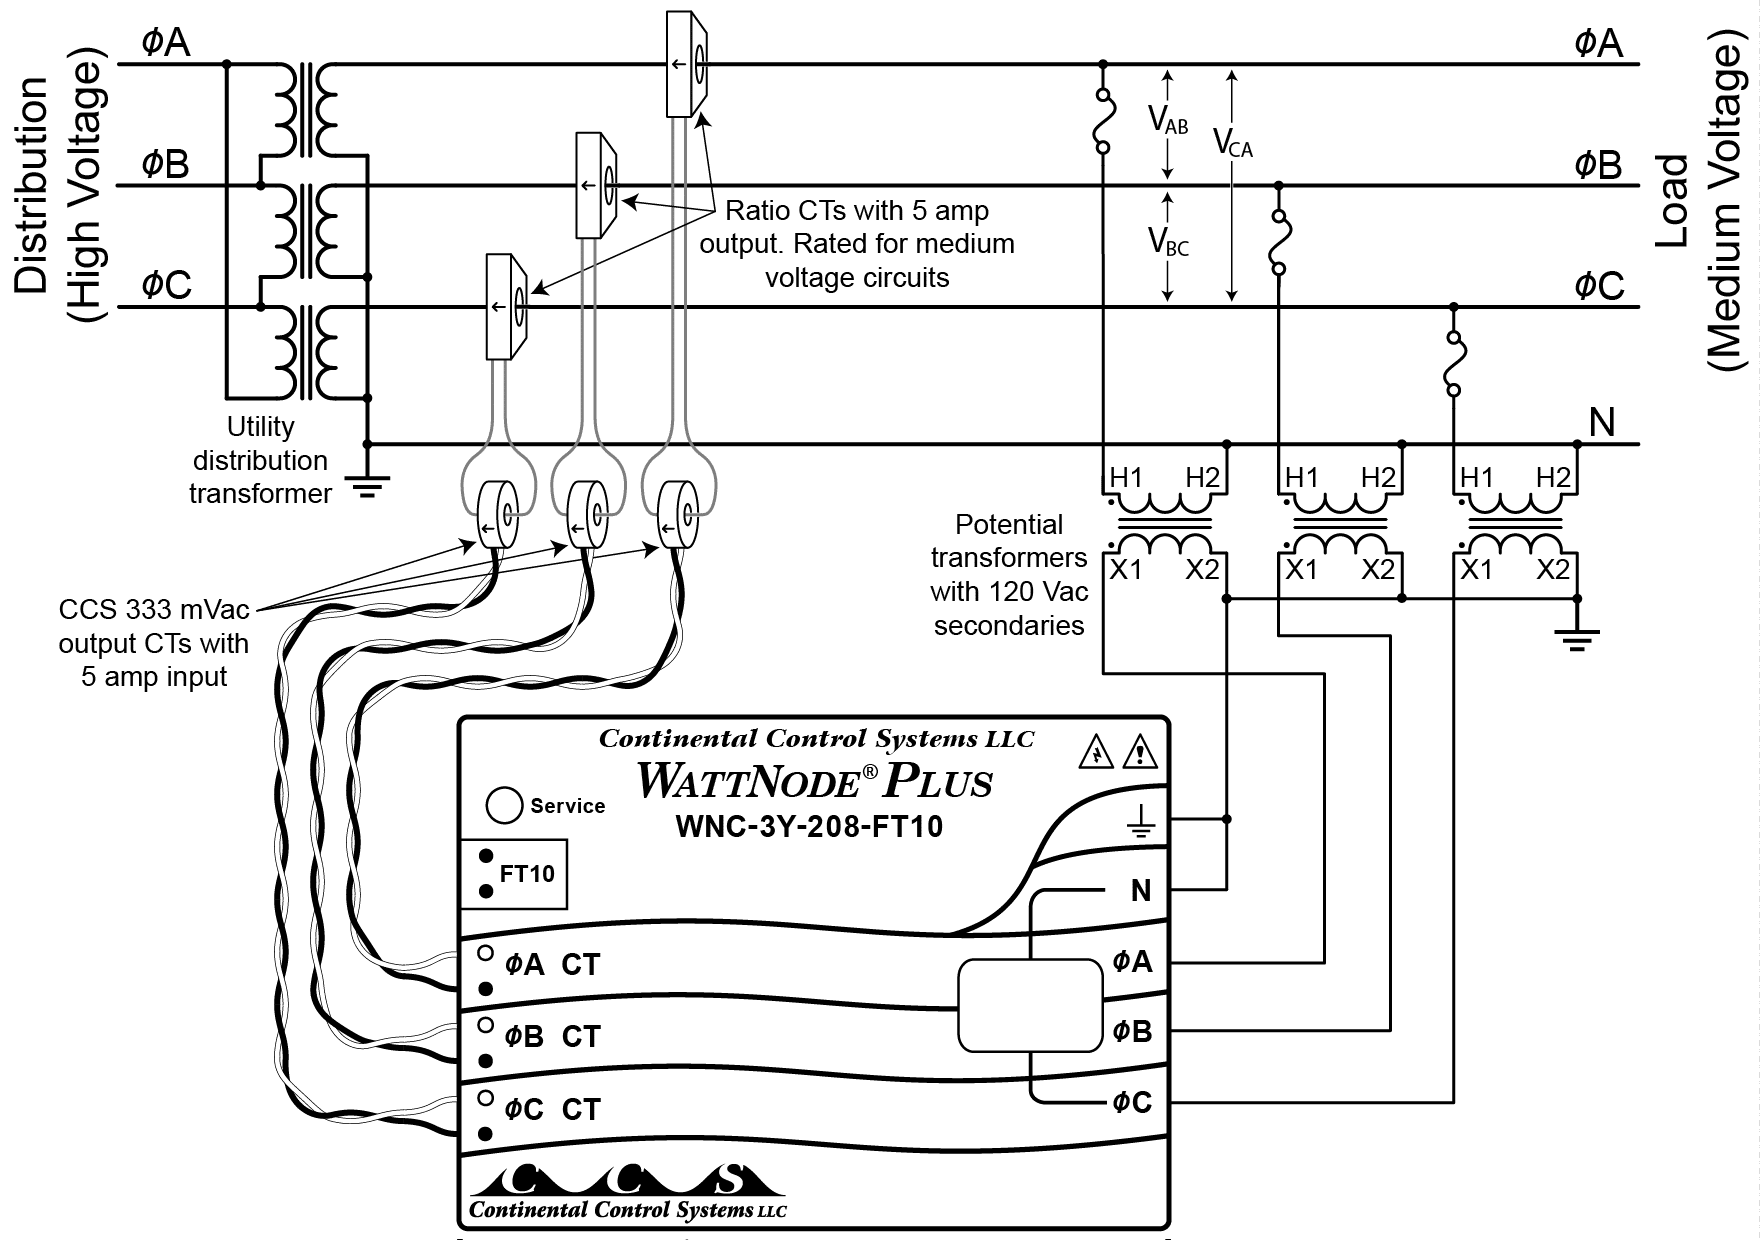 buck boost transformer wiring diagram with Acme Transformer Wiring Diagrams on Acme Buck Boost Transformer Wiring Diagram in addition Leach Lines Diagram further Acme Transformer Wiring Diagrams also Meyer Sewer Pump Wiring Diagram further Wiring Diagram Eaton Transmission.